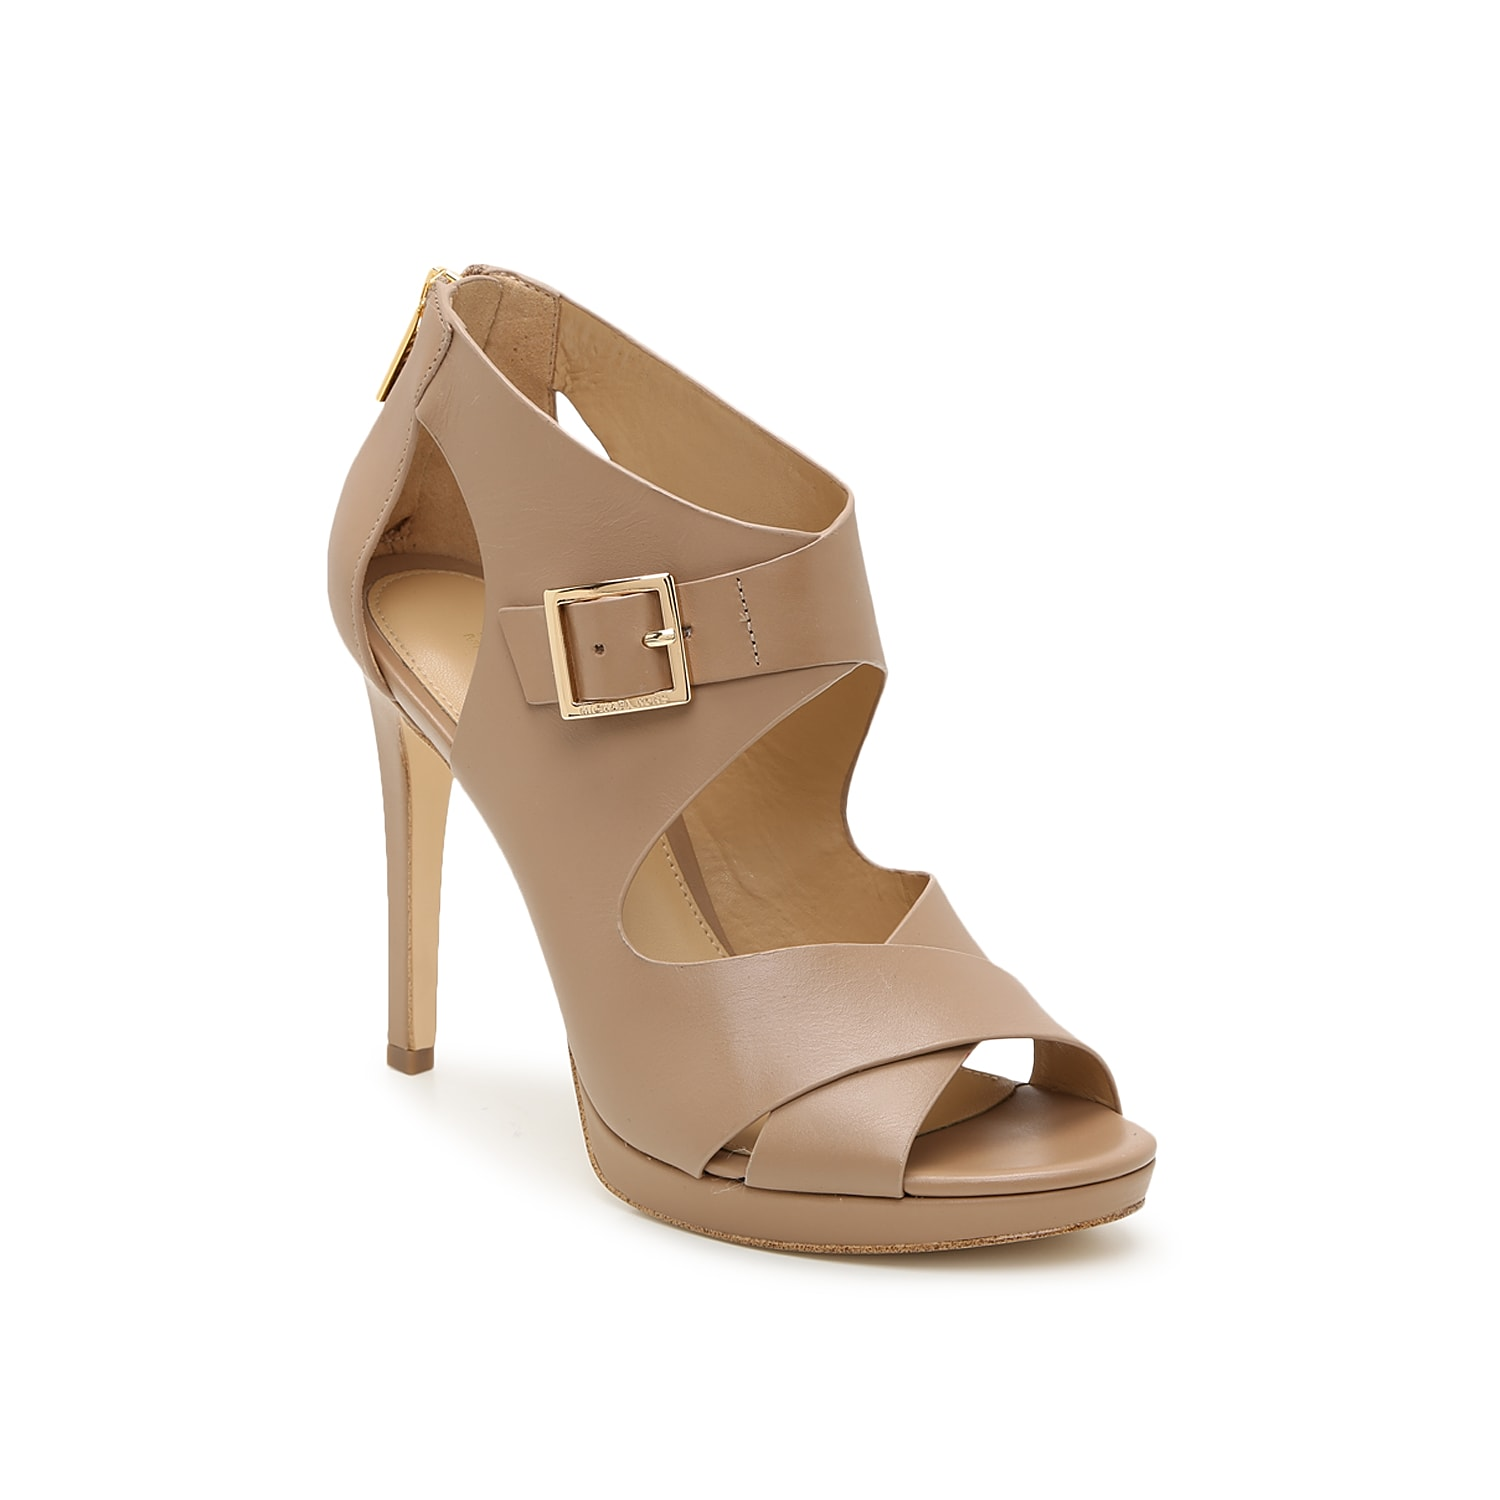 Make a style statement in the Kimber platform sandal from Michael Michael Kors. This leather pair is fashioned with a gold-toned buckle accent and side cut outs for eye-catching appeal.